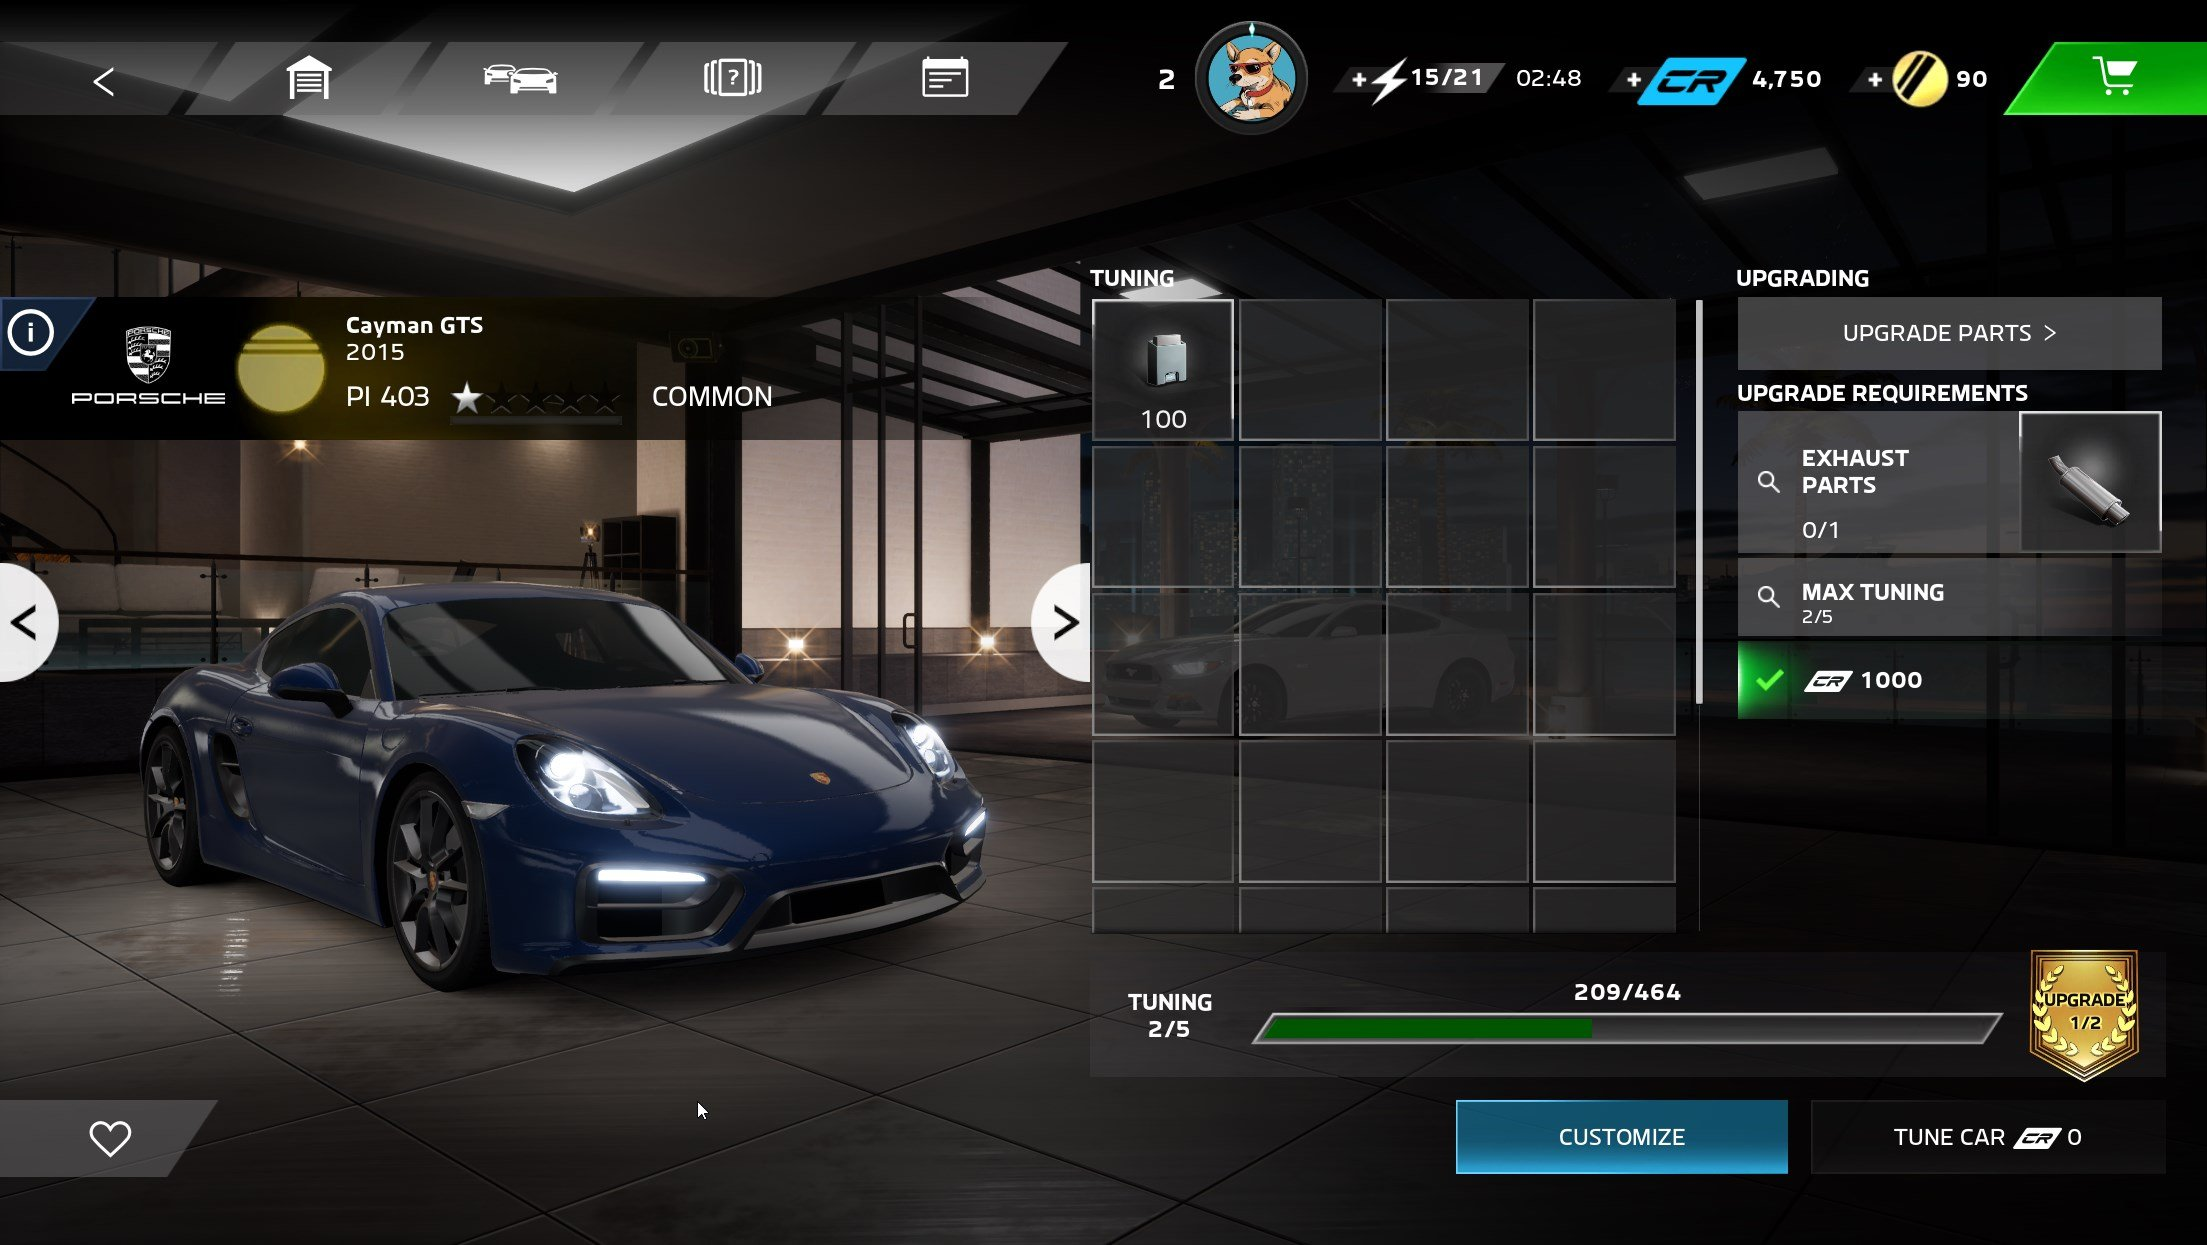 How to tune and customize your car in Forza Street